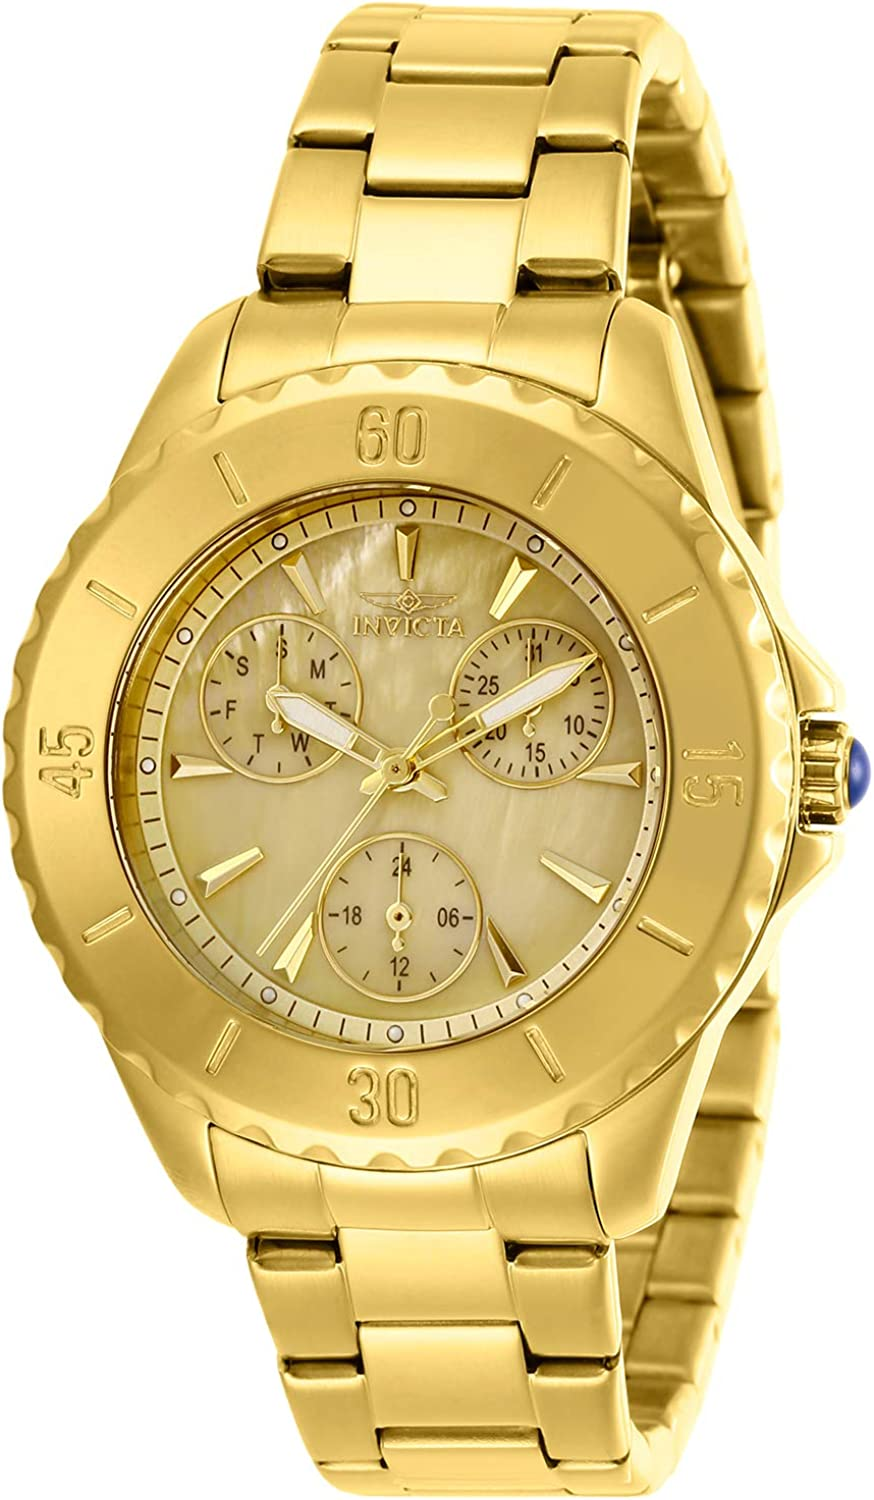 Invicta Women s Angel Quartz Watch with Stainless Steel Strap, Gold, 18 Model 29107